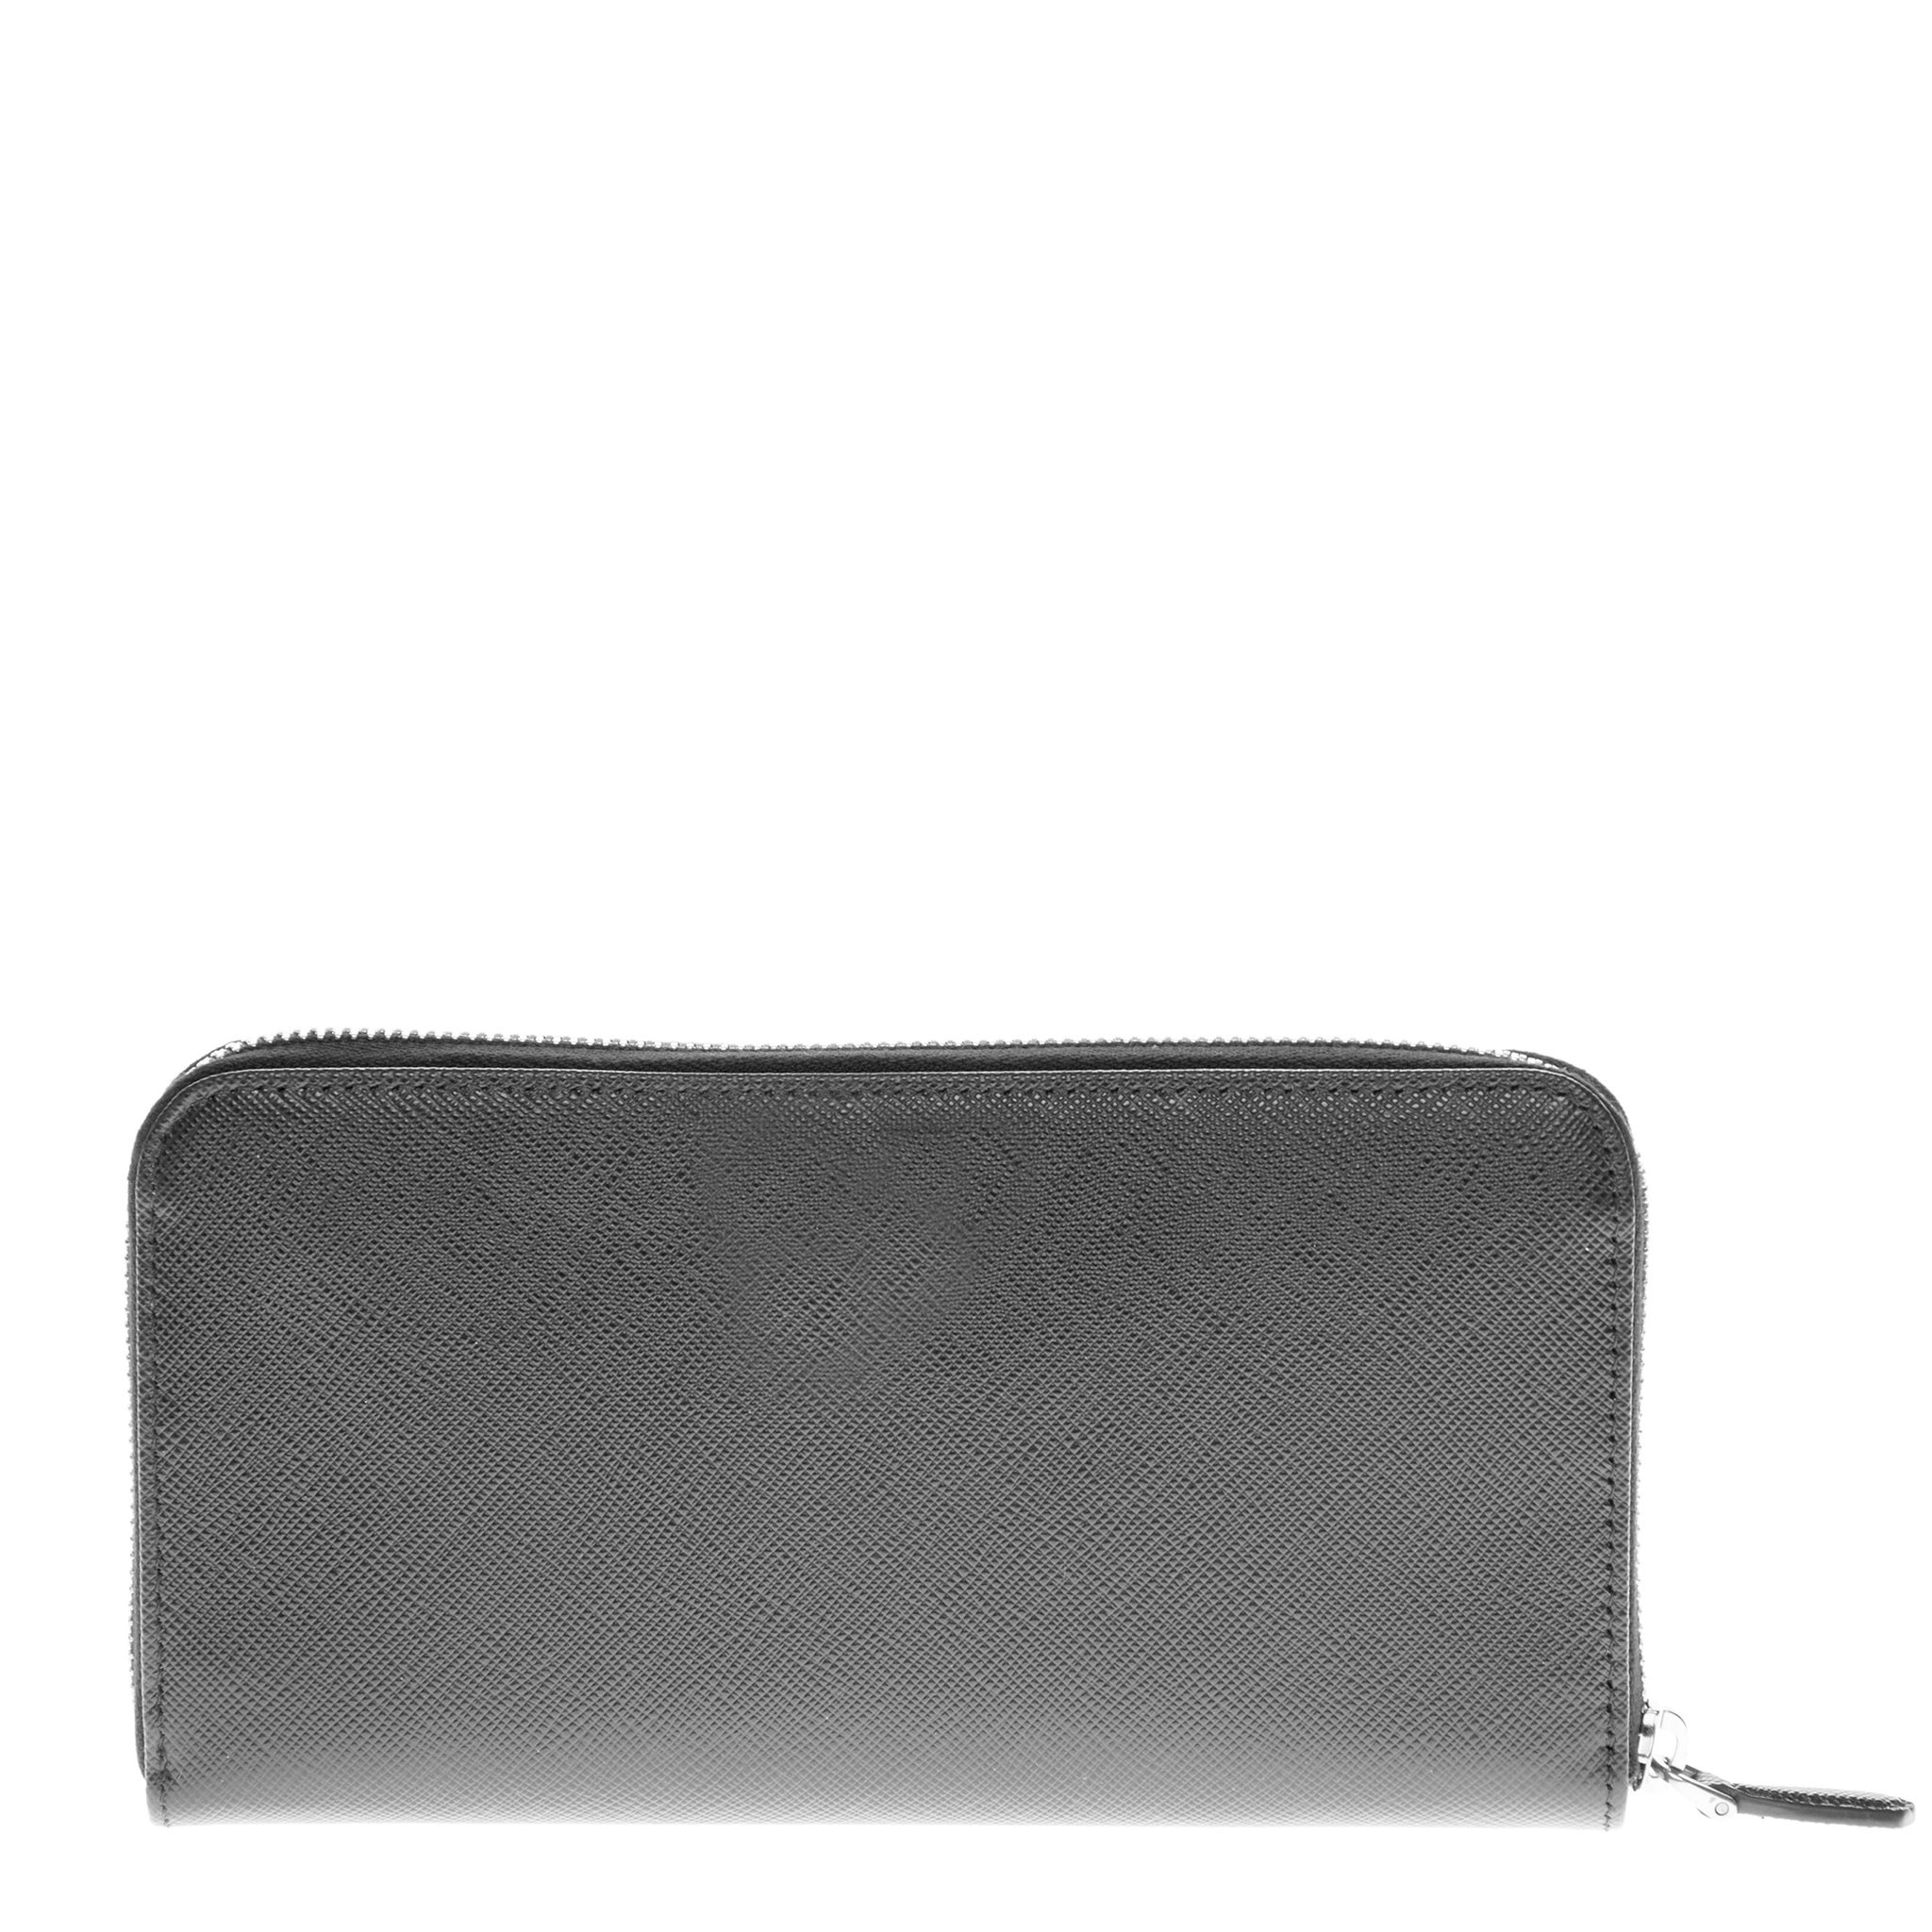 f3fe179ce810 Shop Prada Saffiano Triangle Zip Around Wallet - Free Shipping Today -  Overstock - 10620111